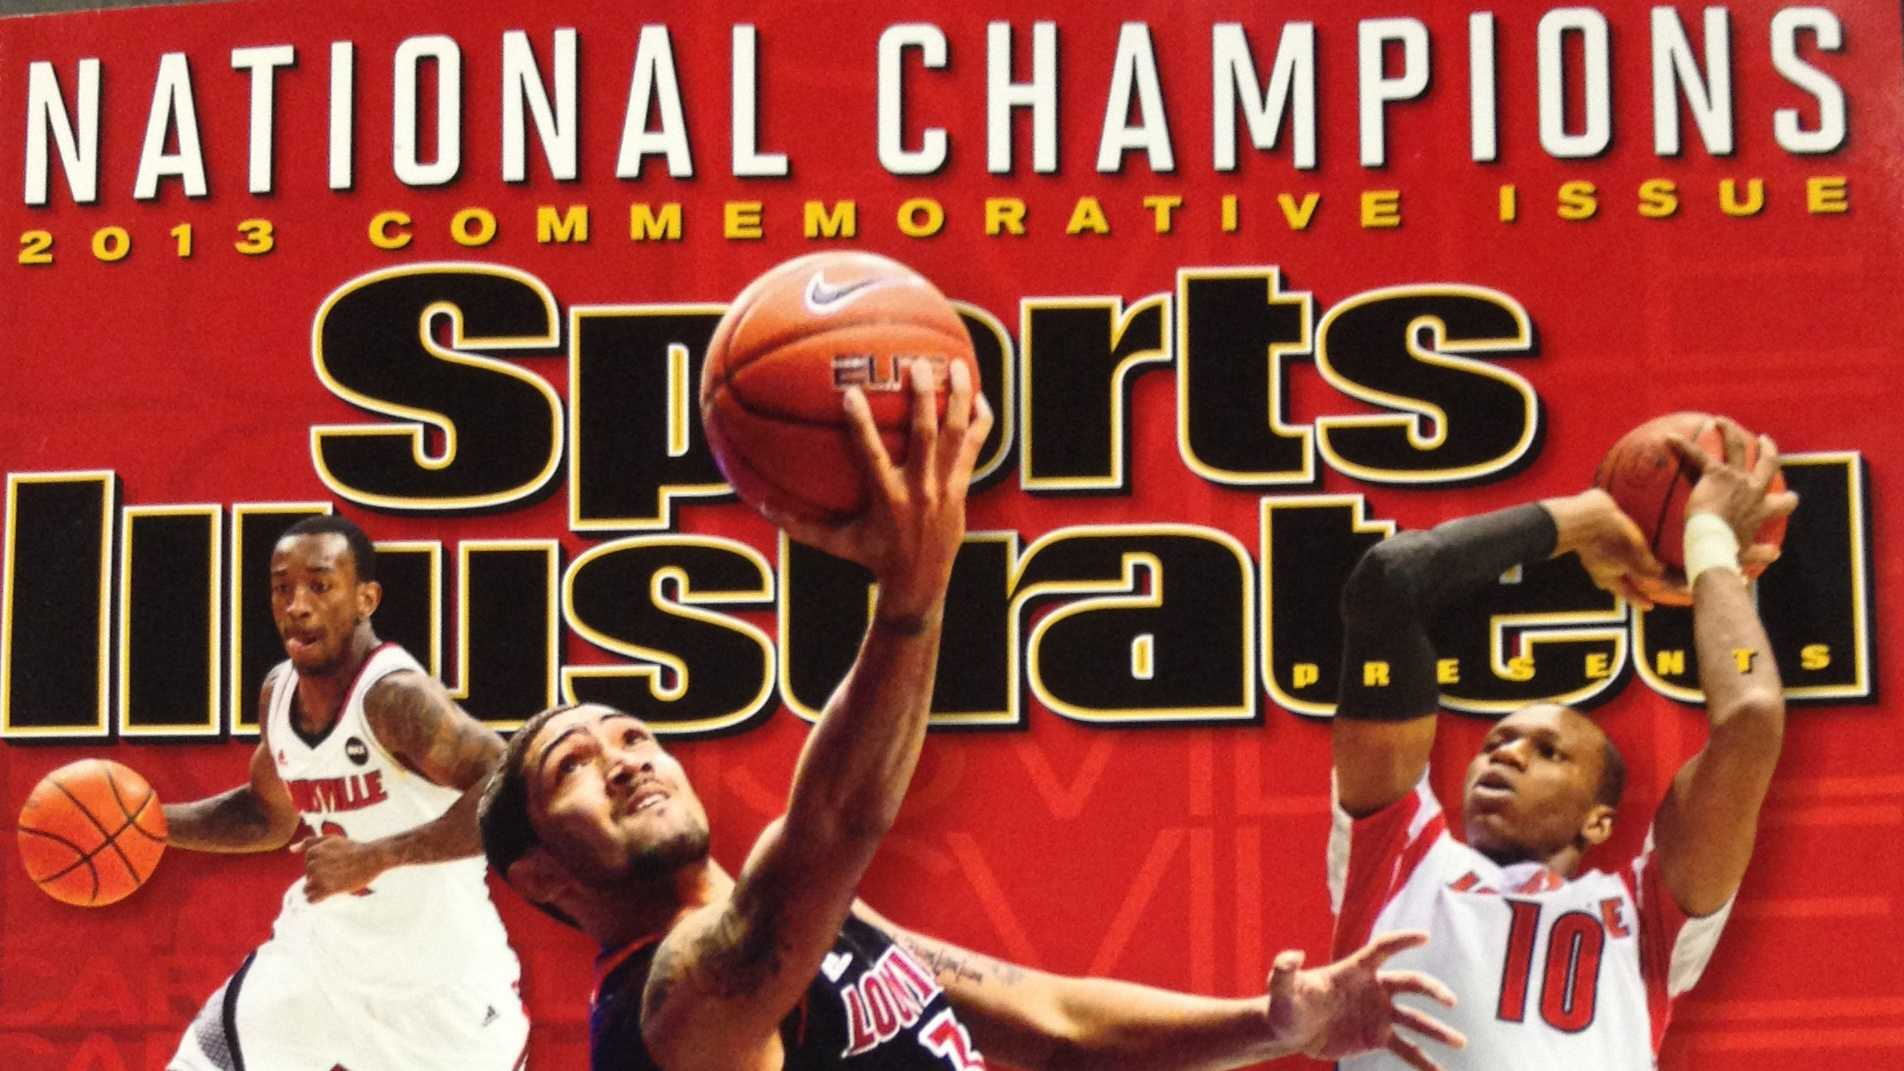 """Sports Illustrated"" has released its special collector's issue commemorating the Louisville Cardinals' third men's basketball championship."